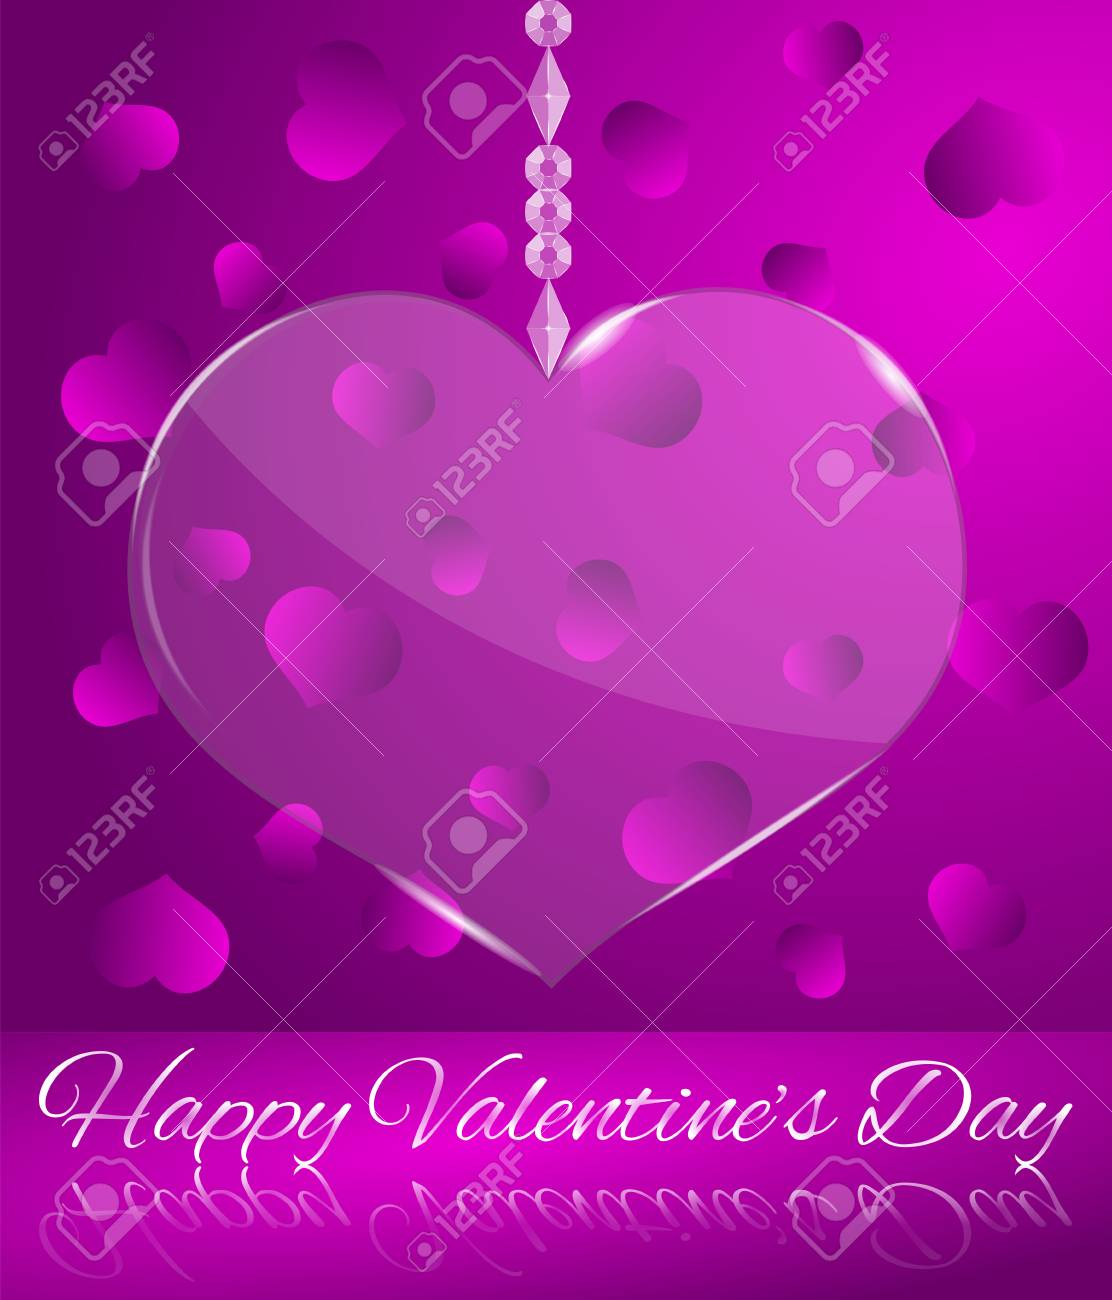 Glowing Transparent Glass Heart Purple Happy Valentines Day Greeting